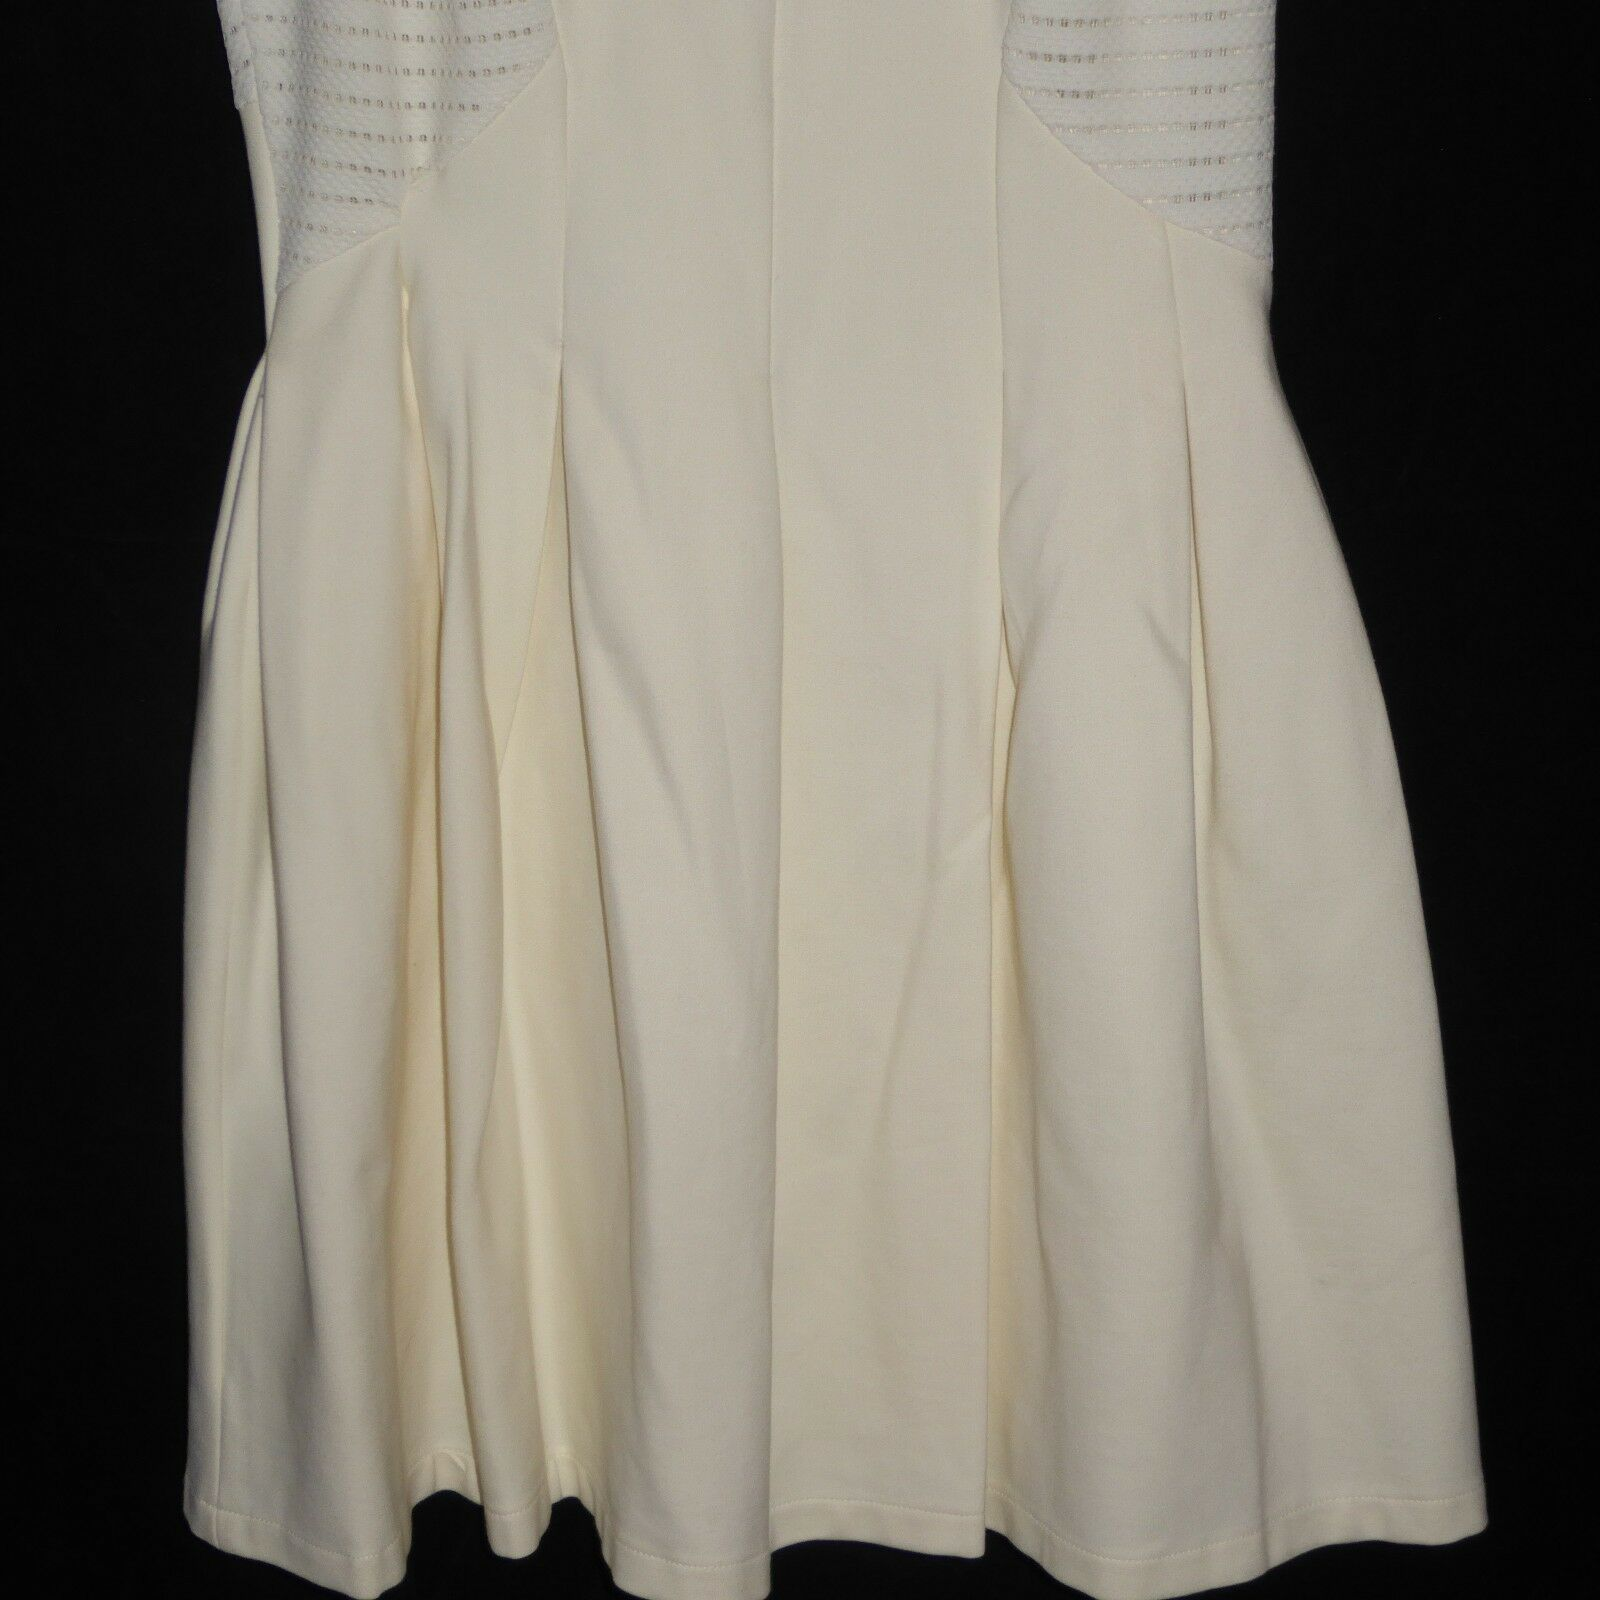 NWT BCBG Maxazria Medium Lined Dress Off White Color NEW $368 Sleeveless BackZip